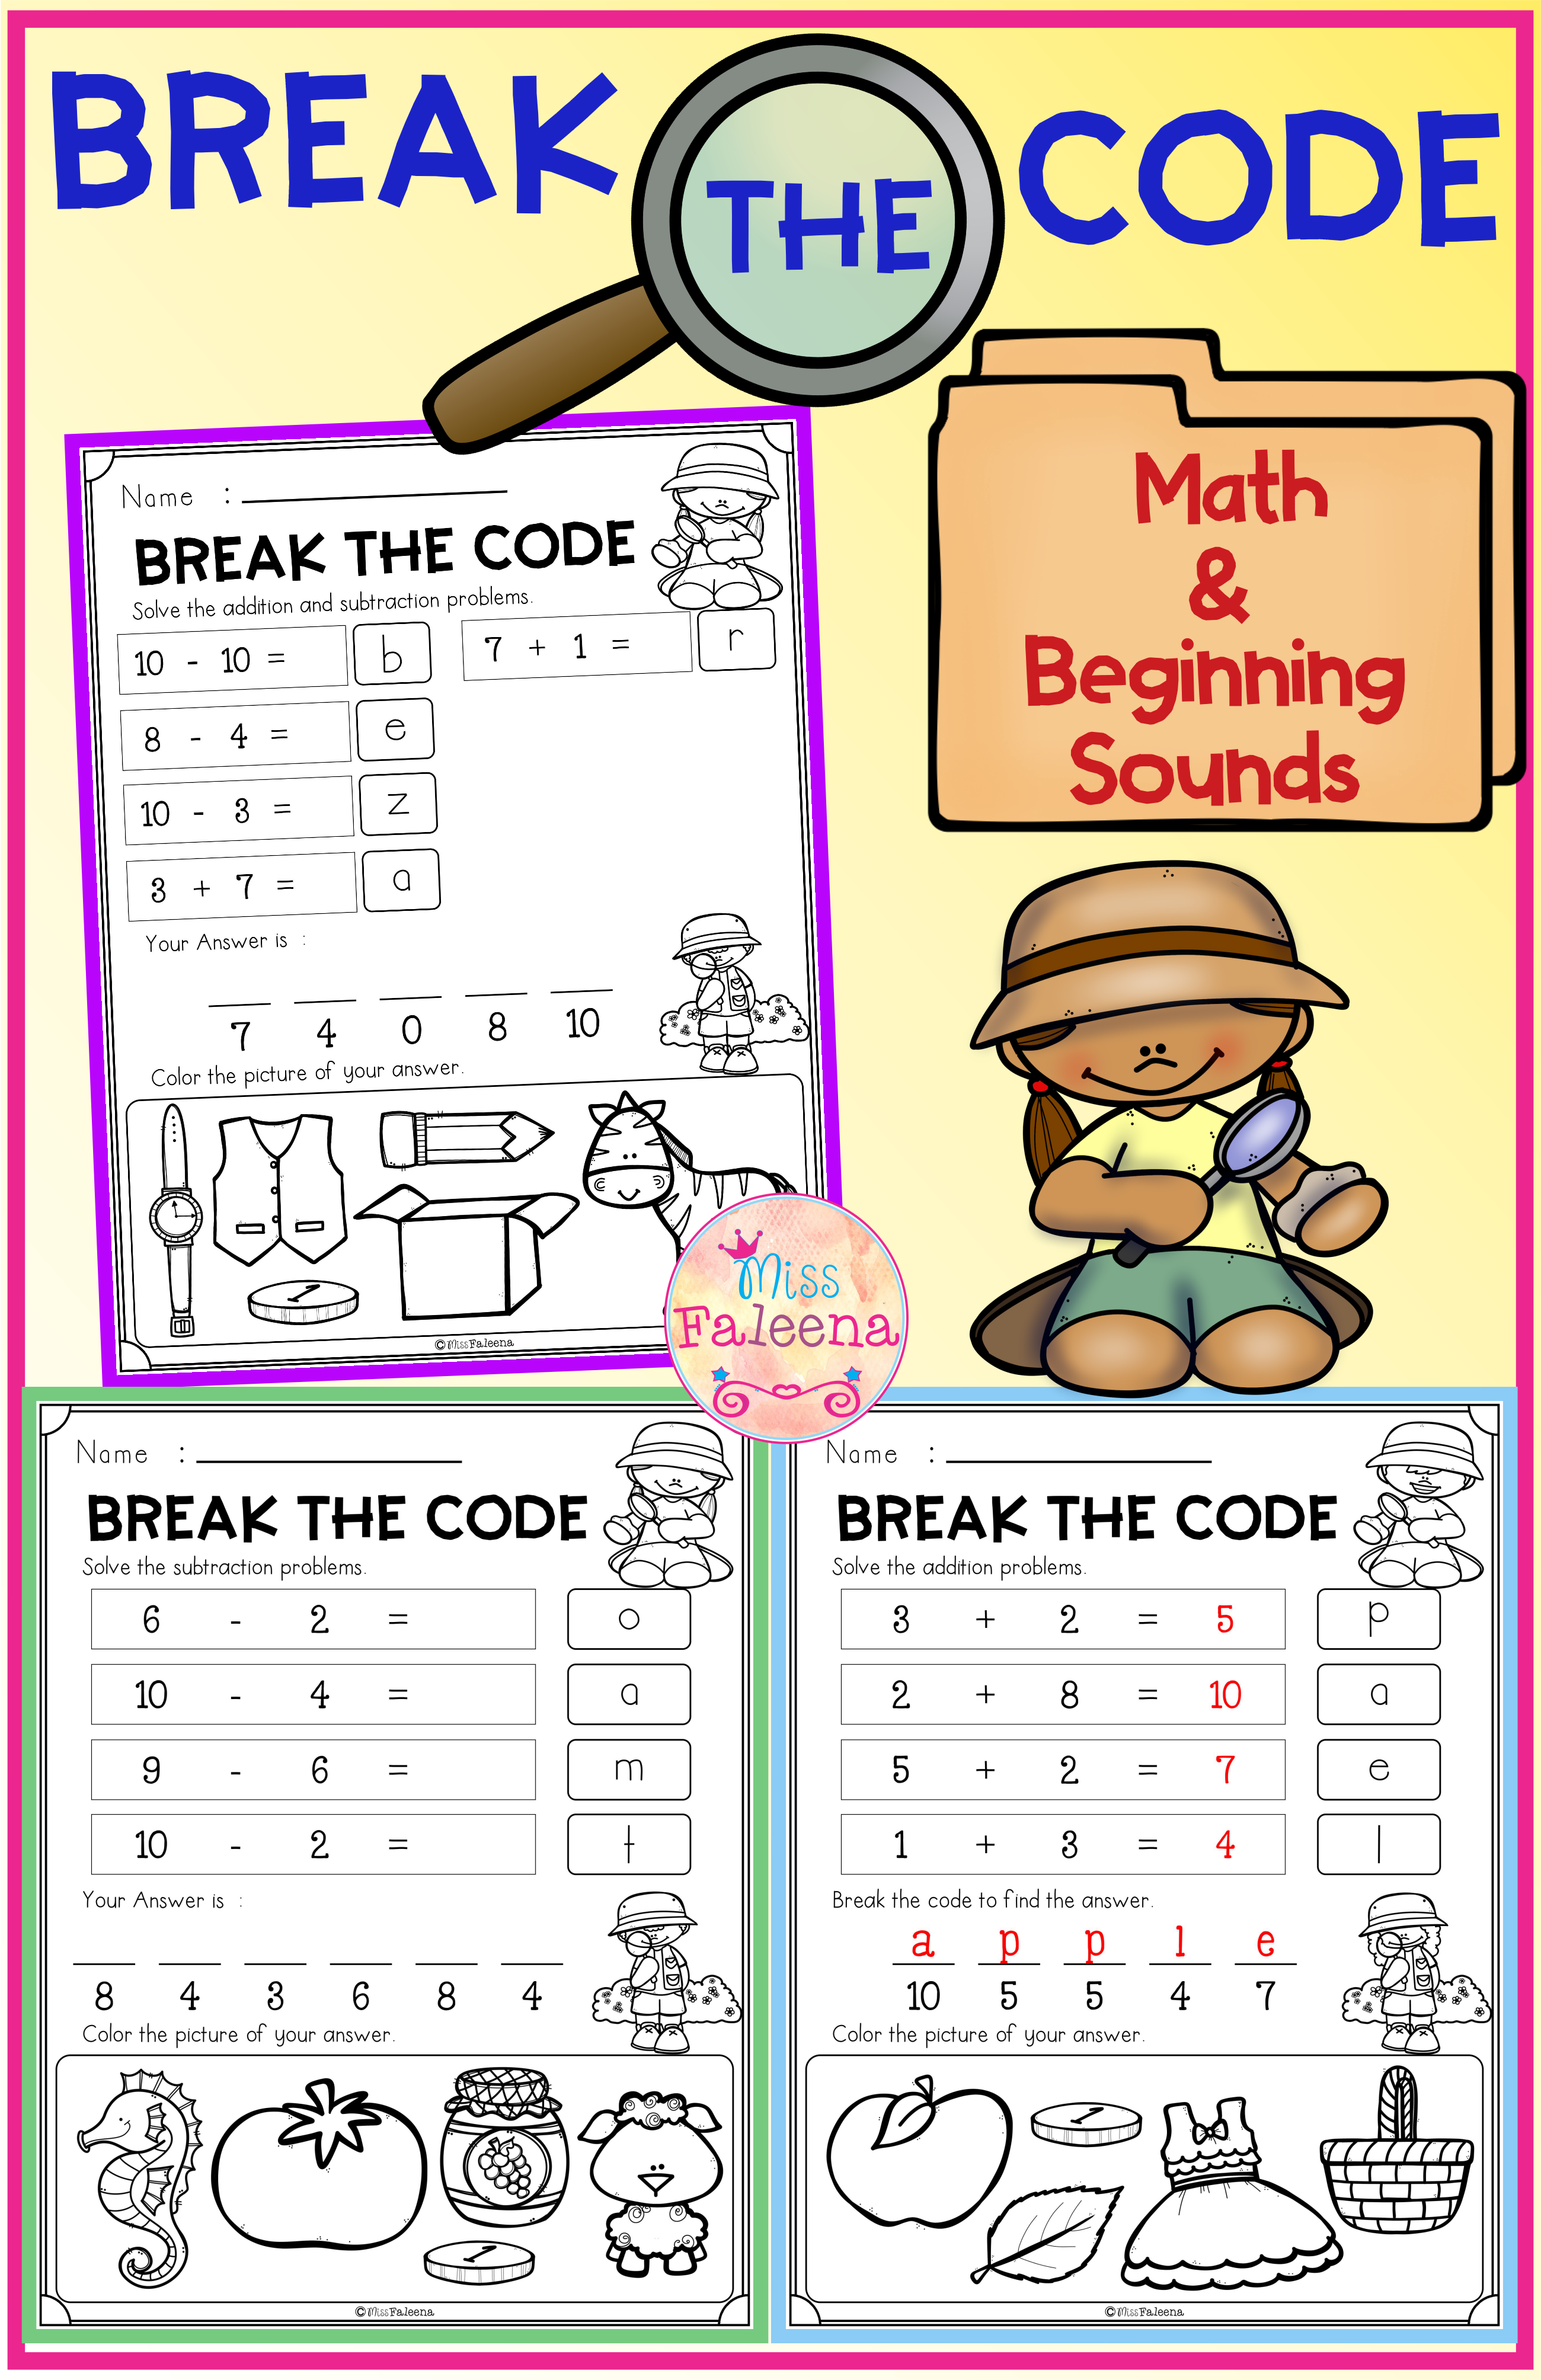 Break The Code Math And Beginning Sounds